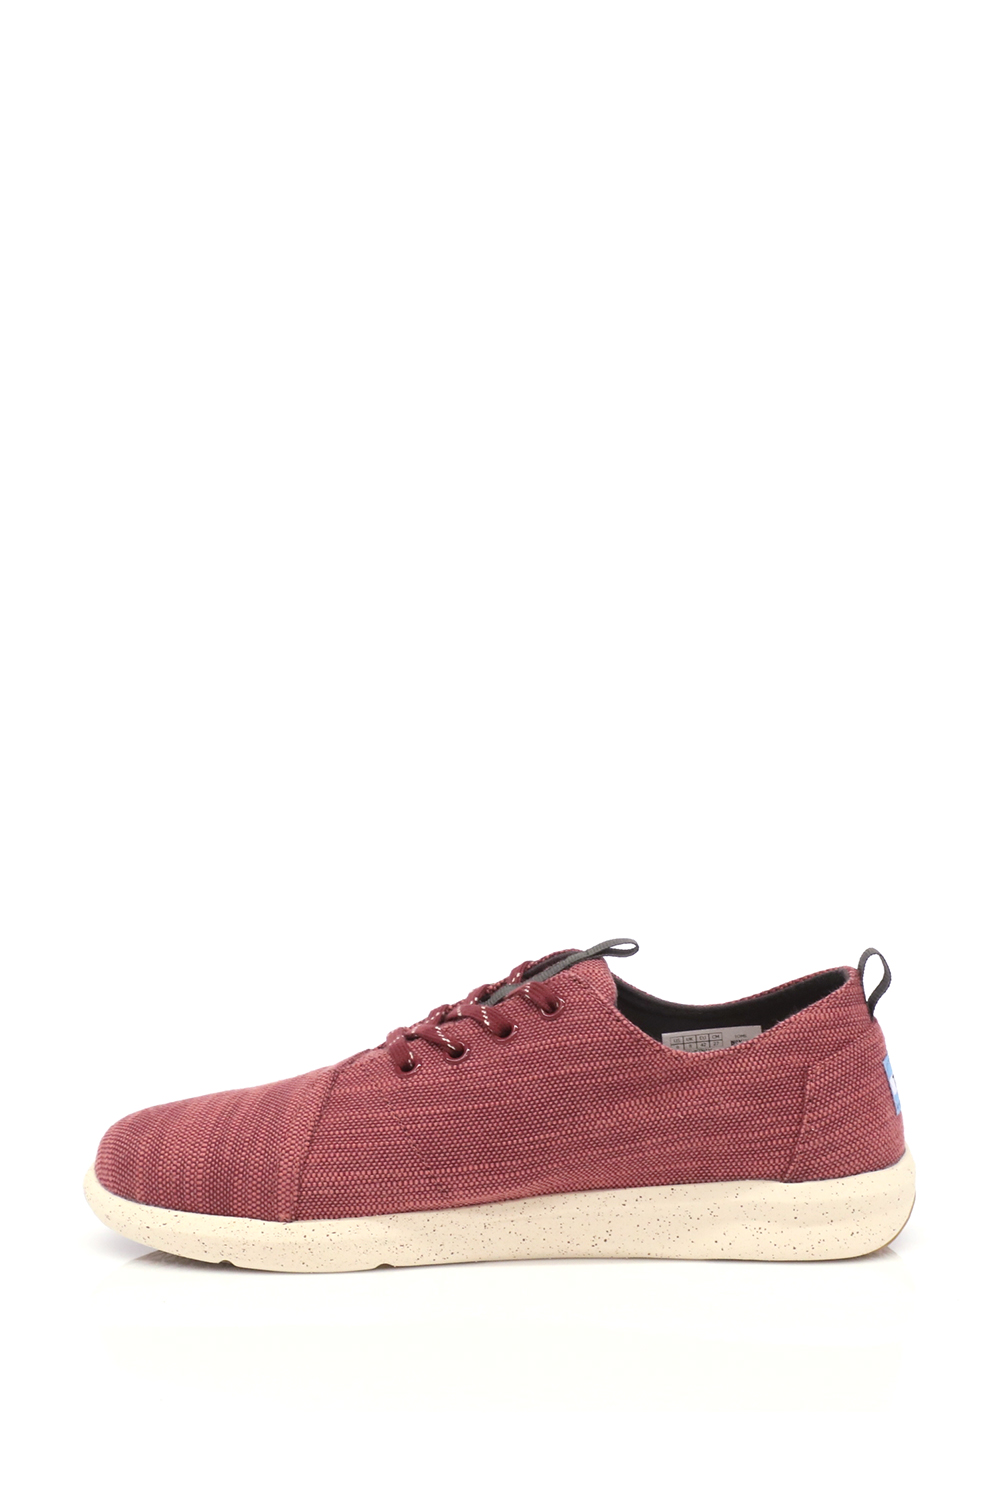 TOMS – Ανδρικά sneakers TOMS κόκκινα